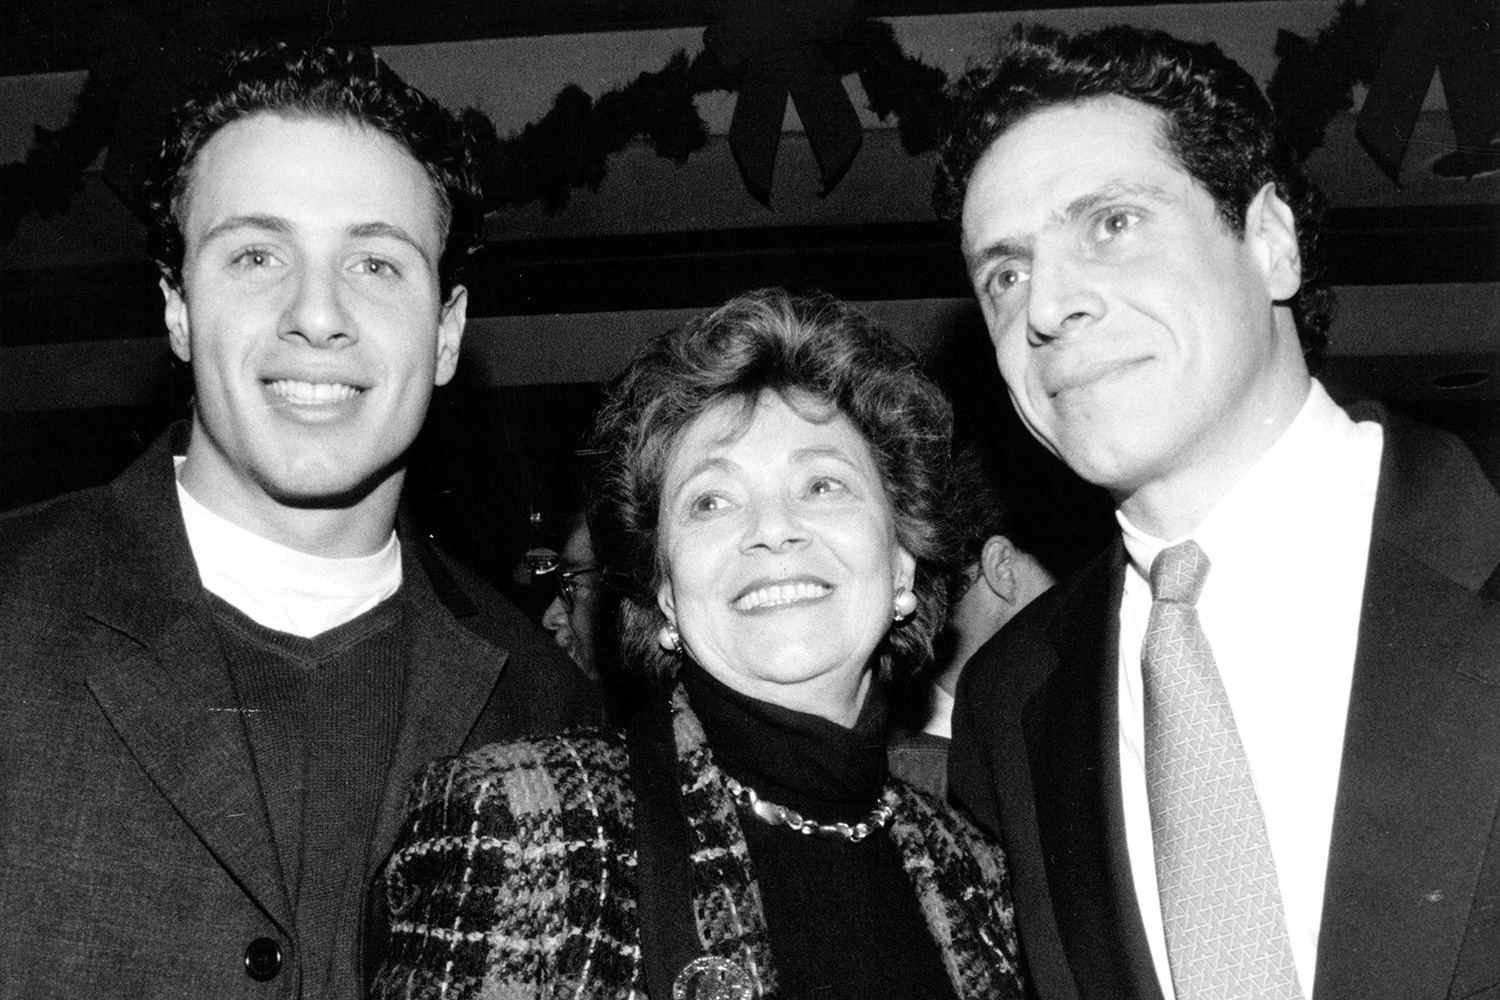 New York's First Lady Matilda Cuomo with her sons Chris Cuomo, left, and Andrew Cuomo during Andrew's birthday party in New York City. December 19, 1994.